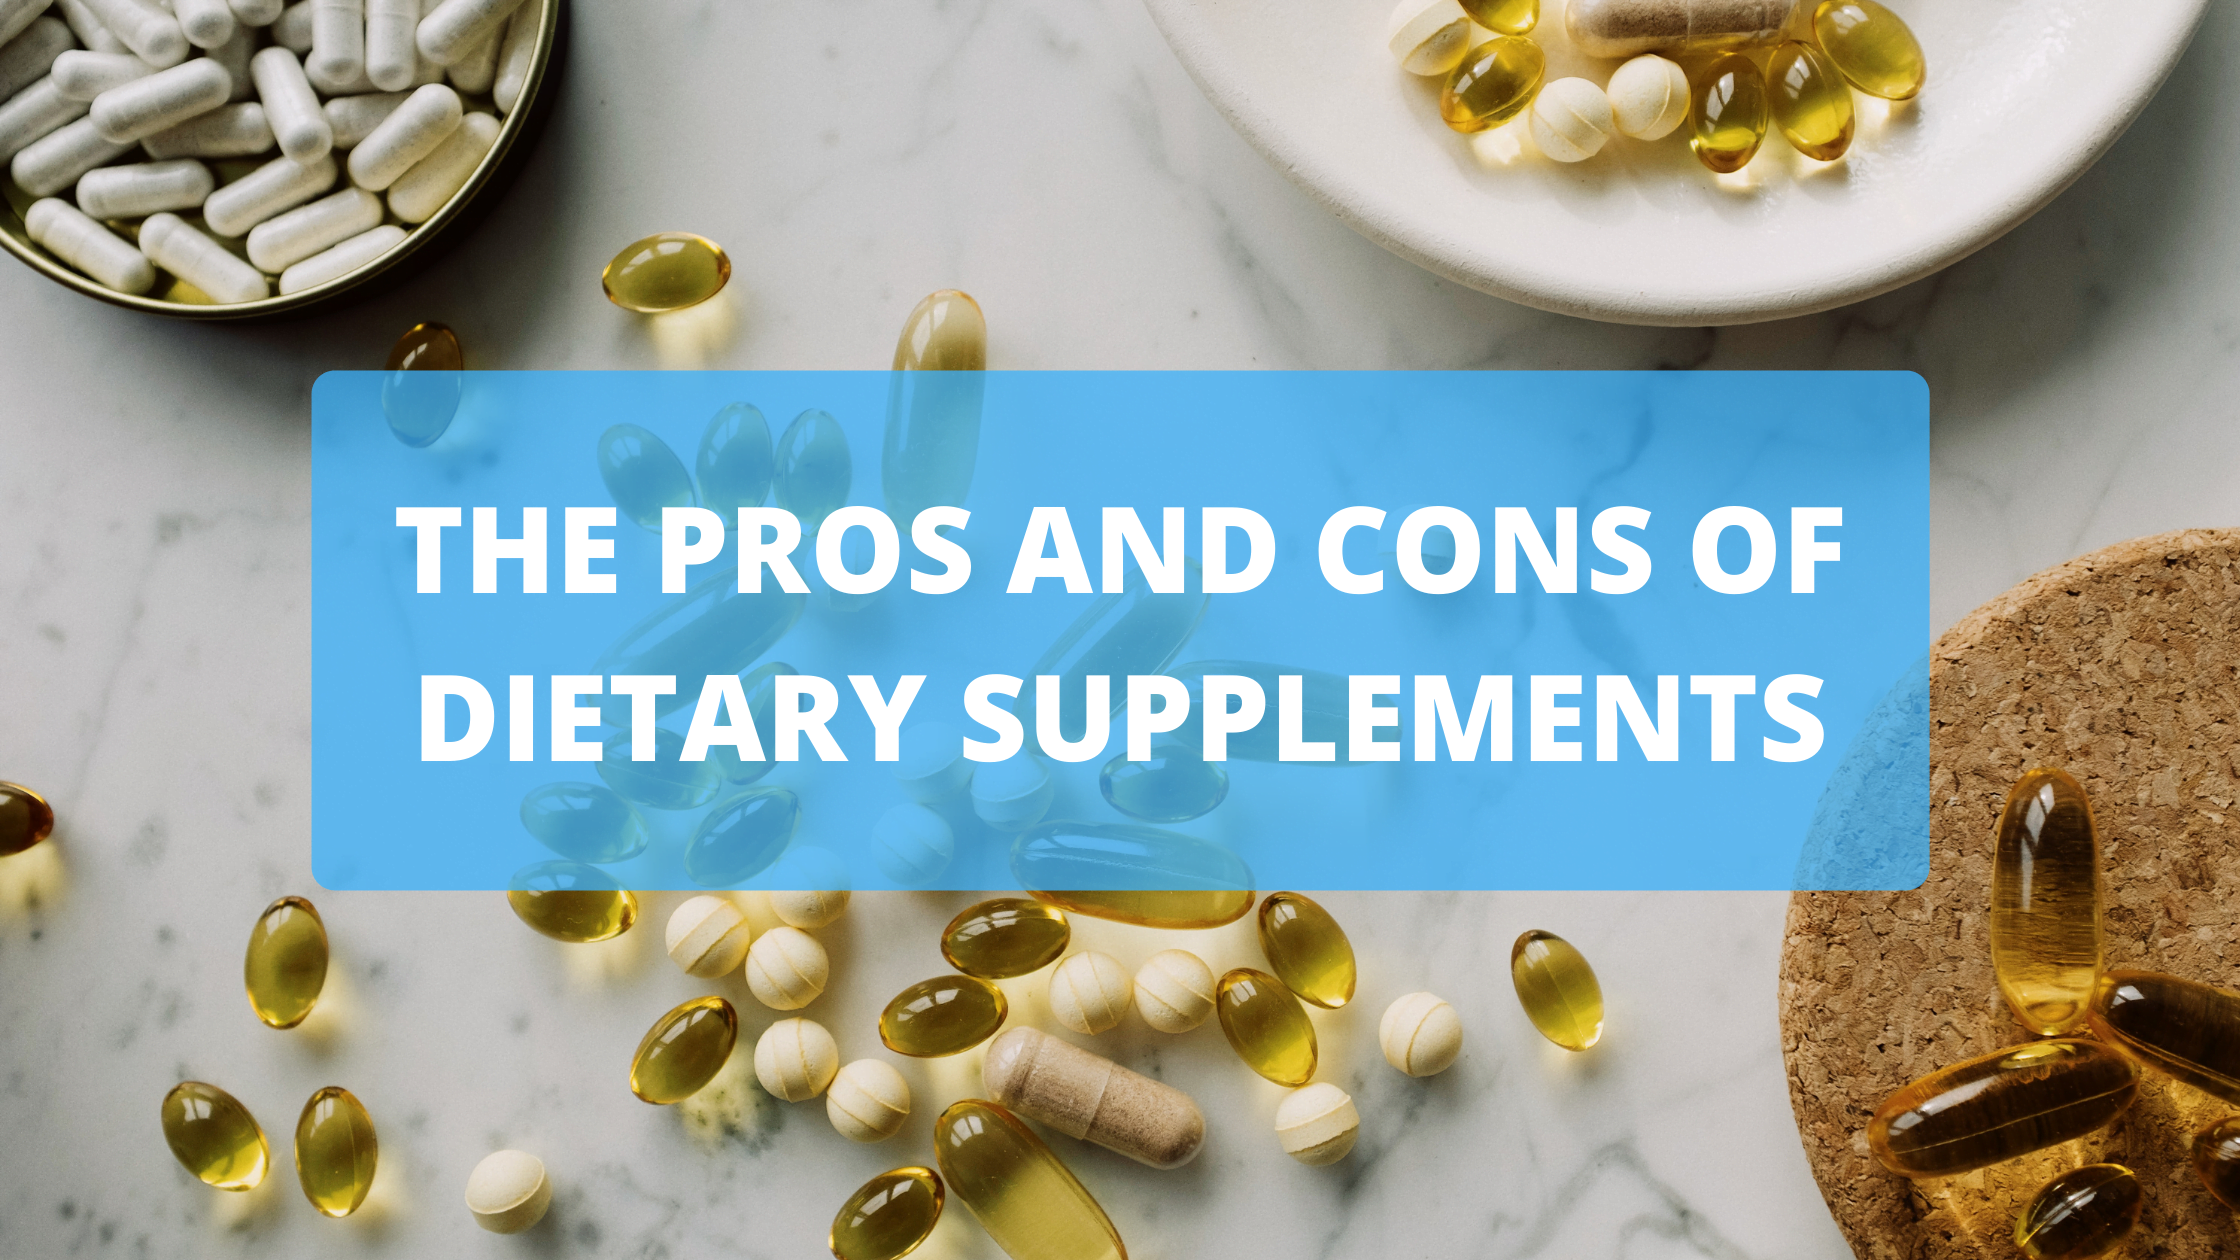 Dietary Supplements: The Pros and Cons